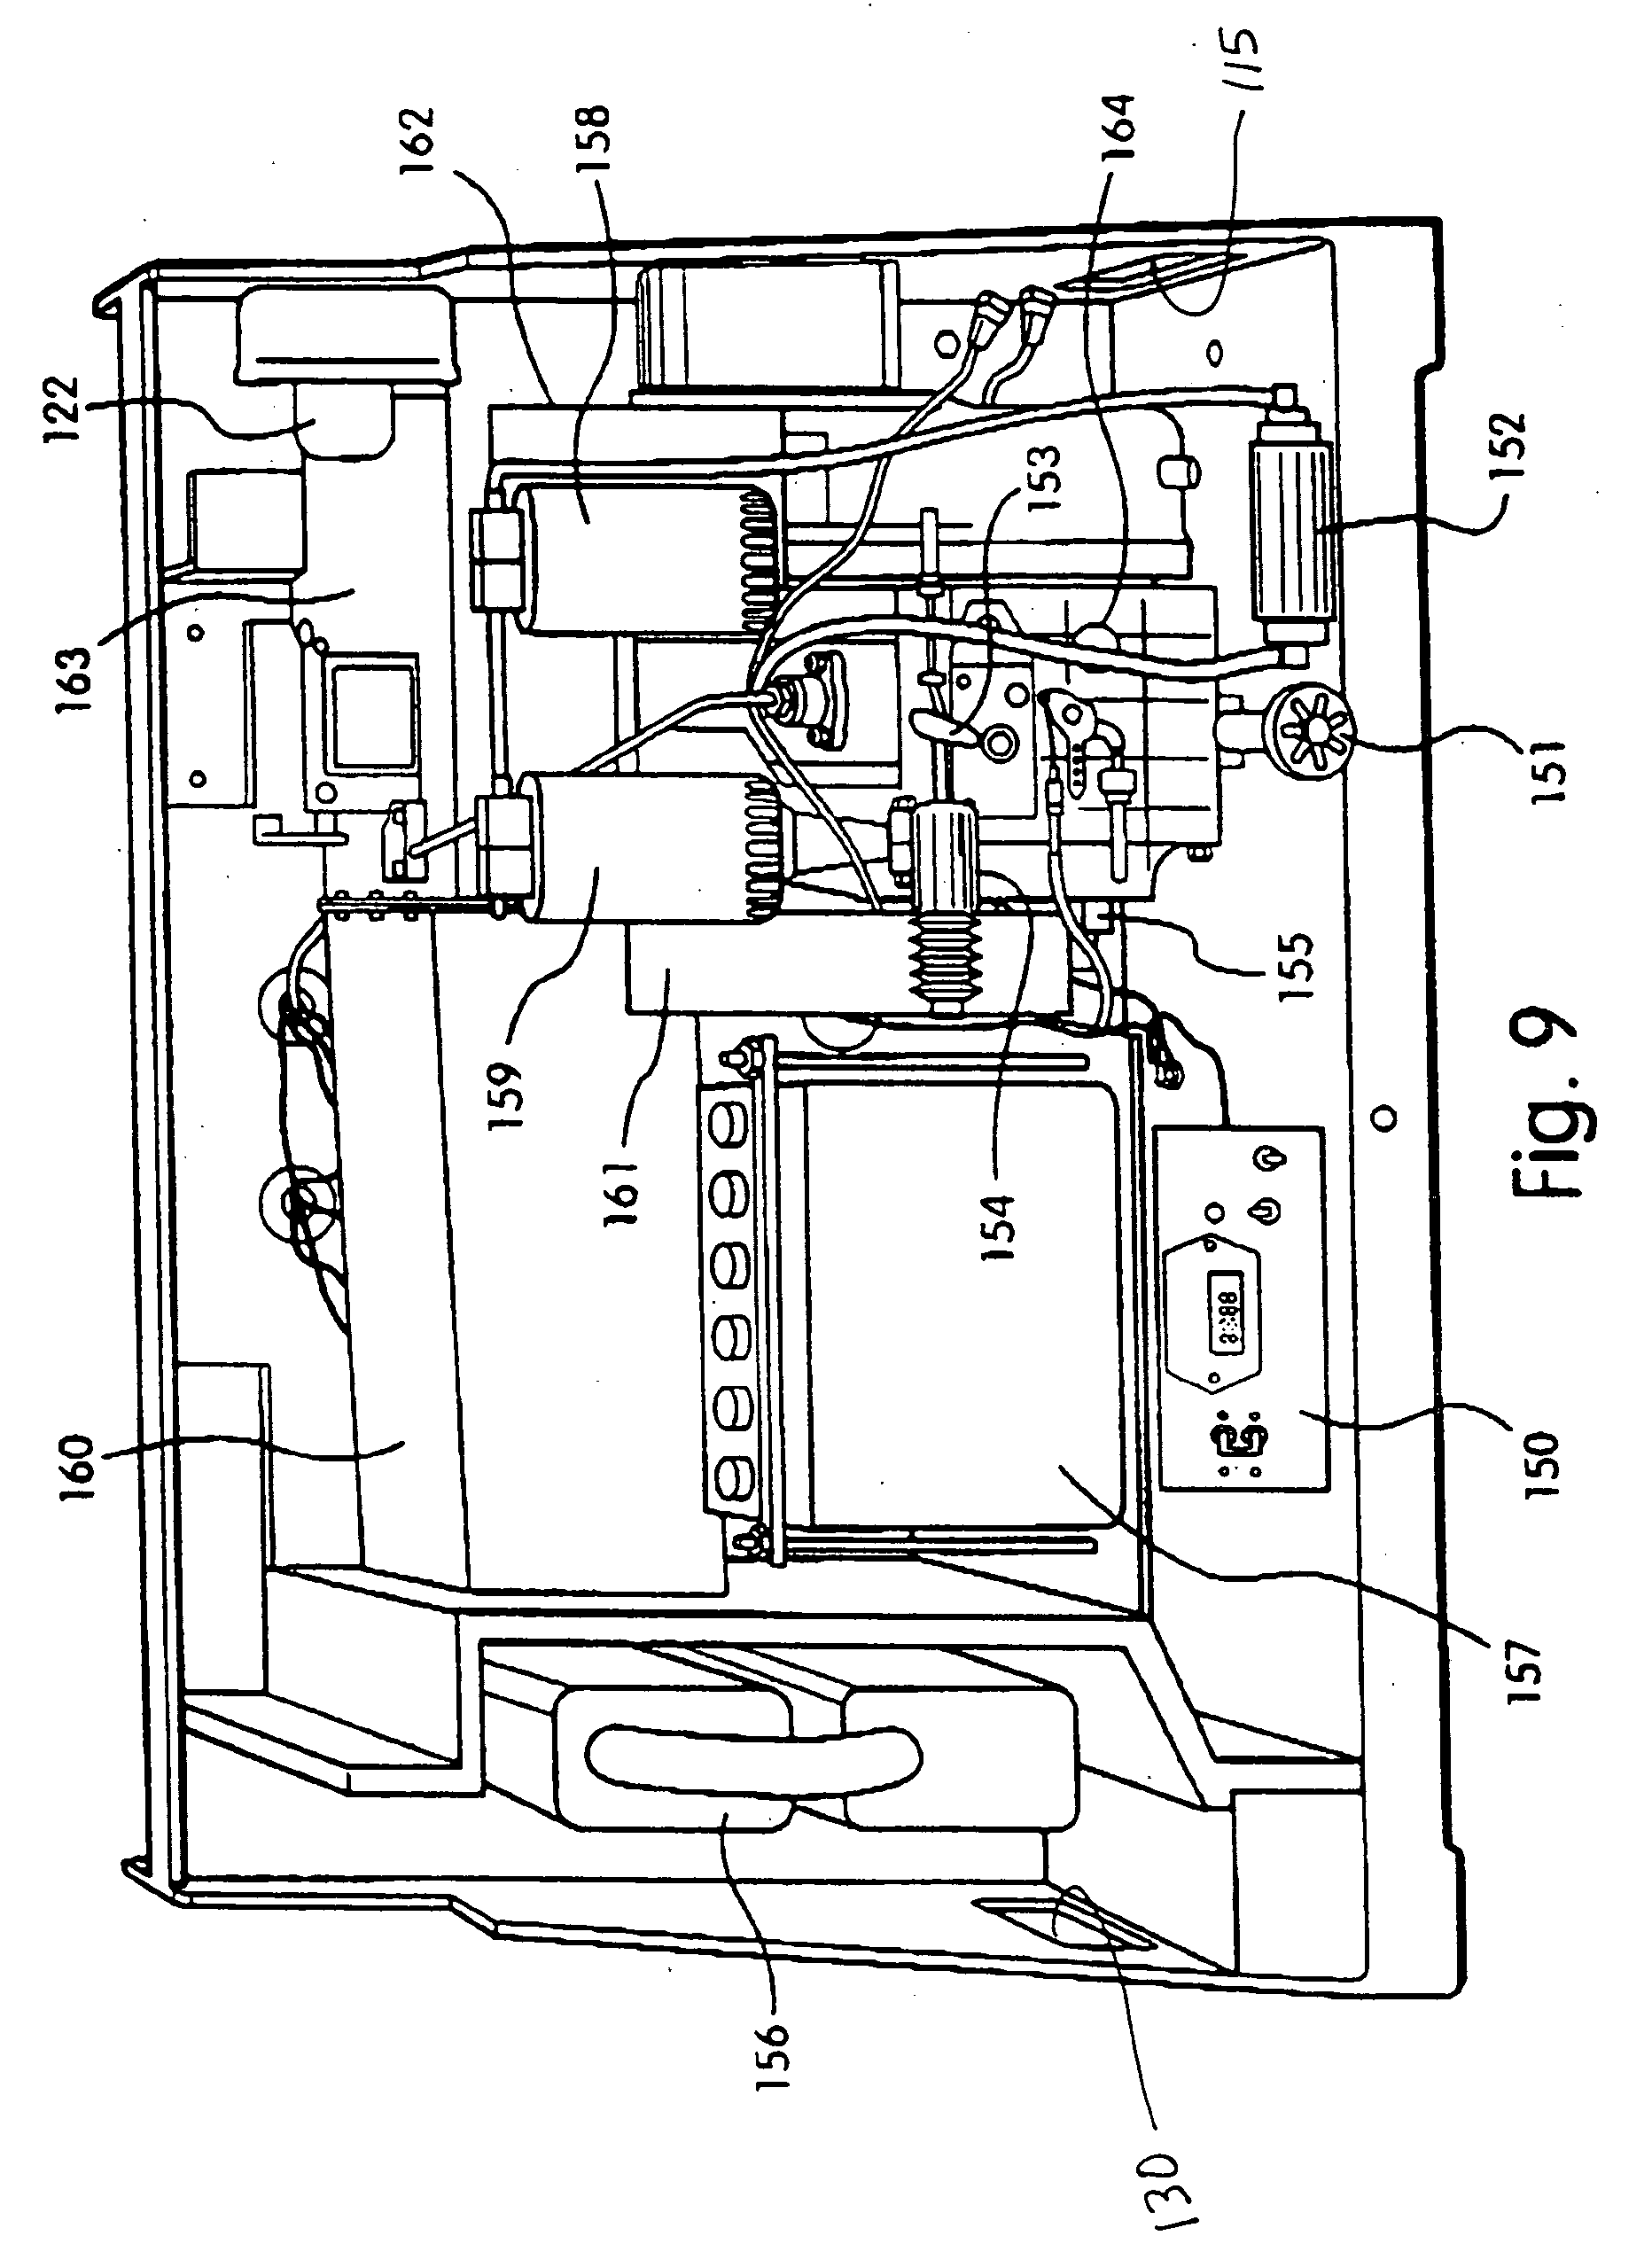 patent us apparatus which eliminates the need for patent drawing